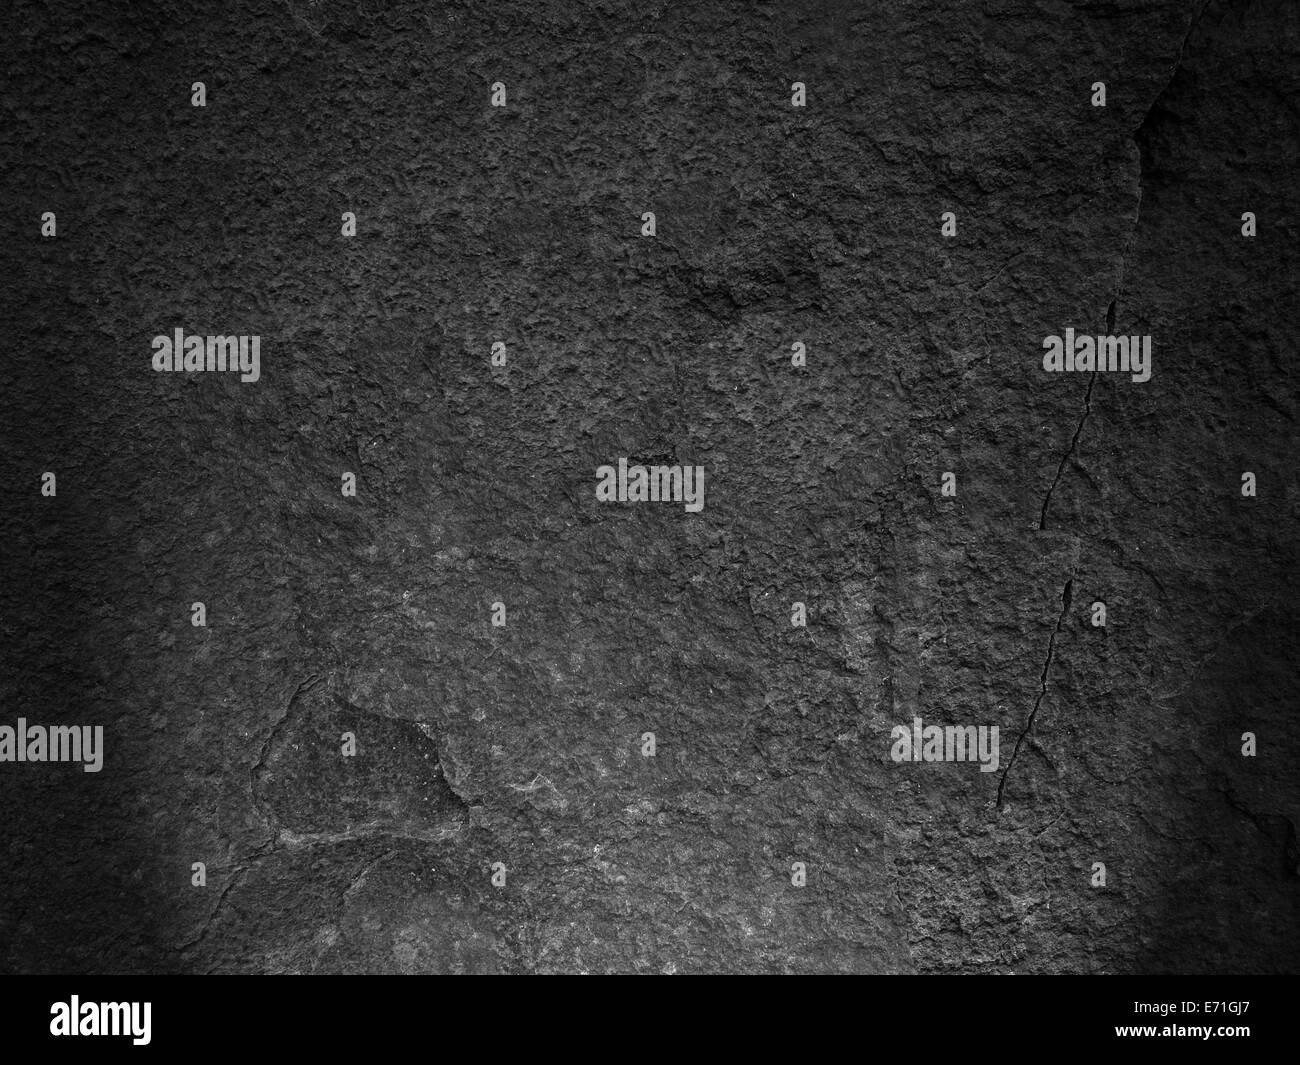 Detail of black rock texture and roughness - Stock Image